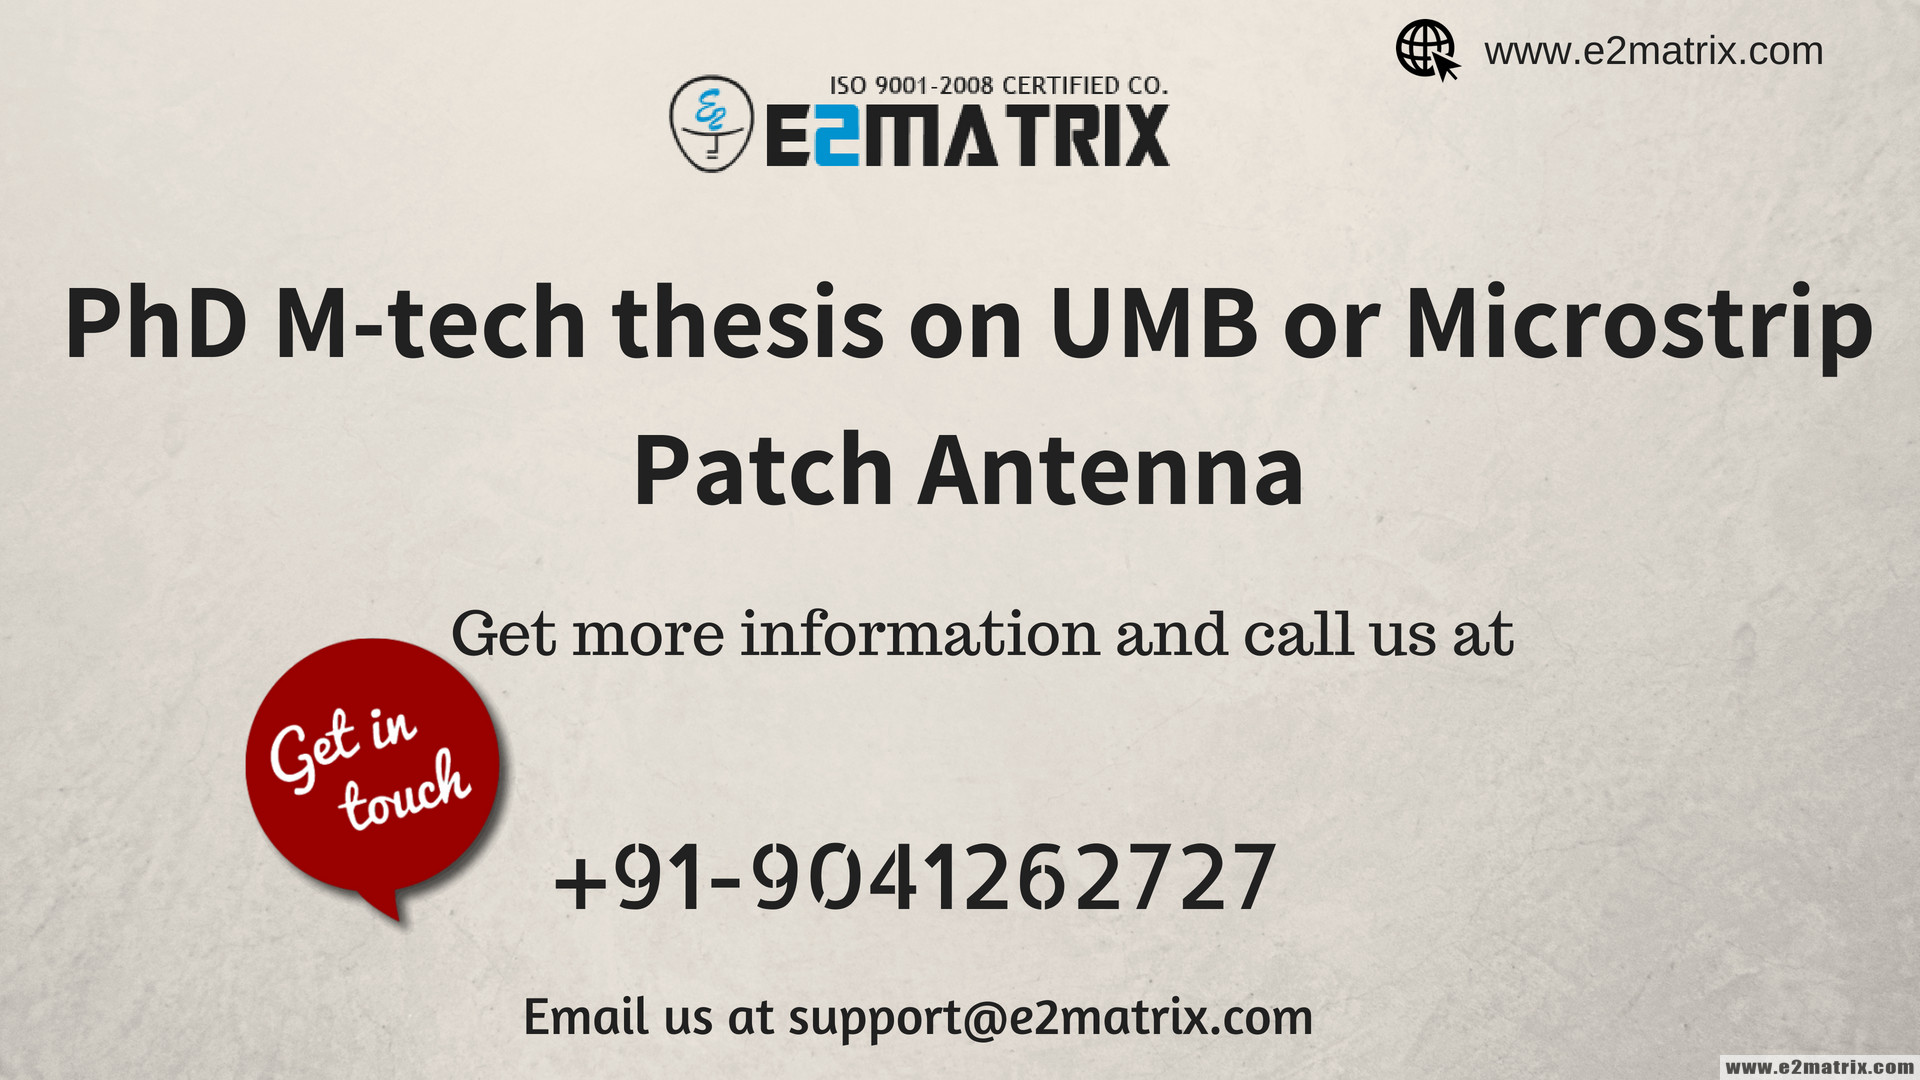 PhD M-tech thesis on UMB or Microstrip patch antenna